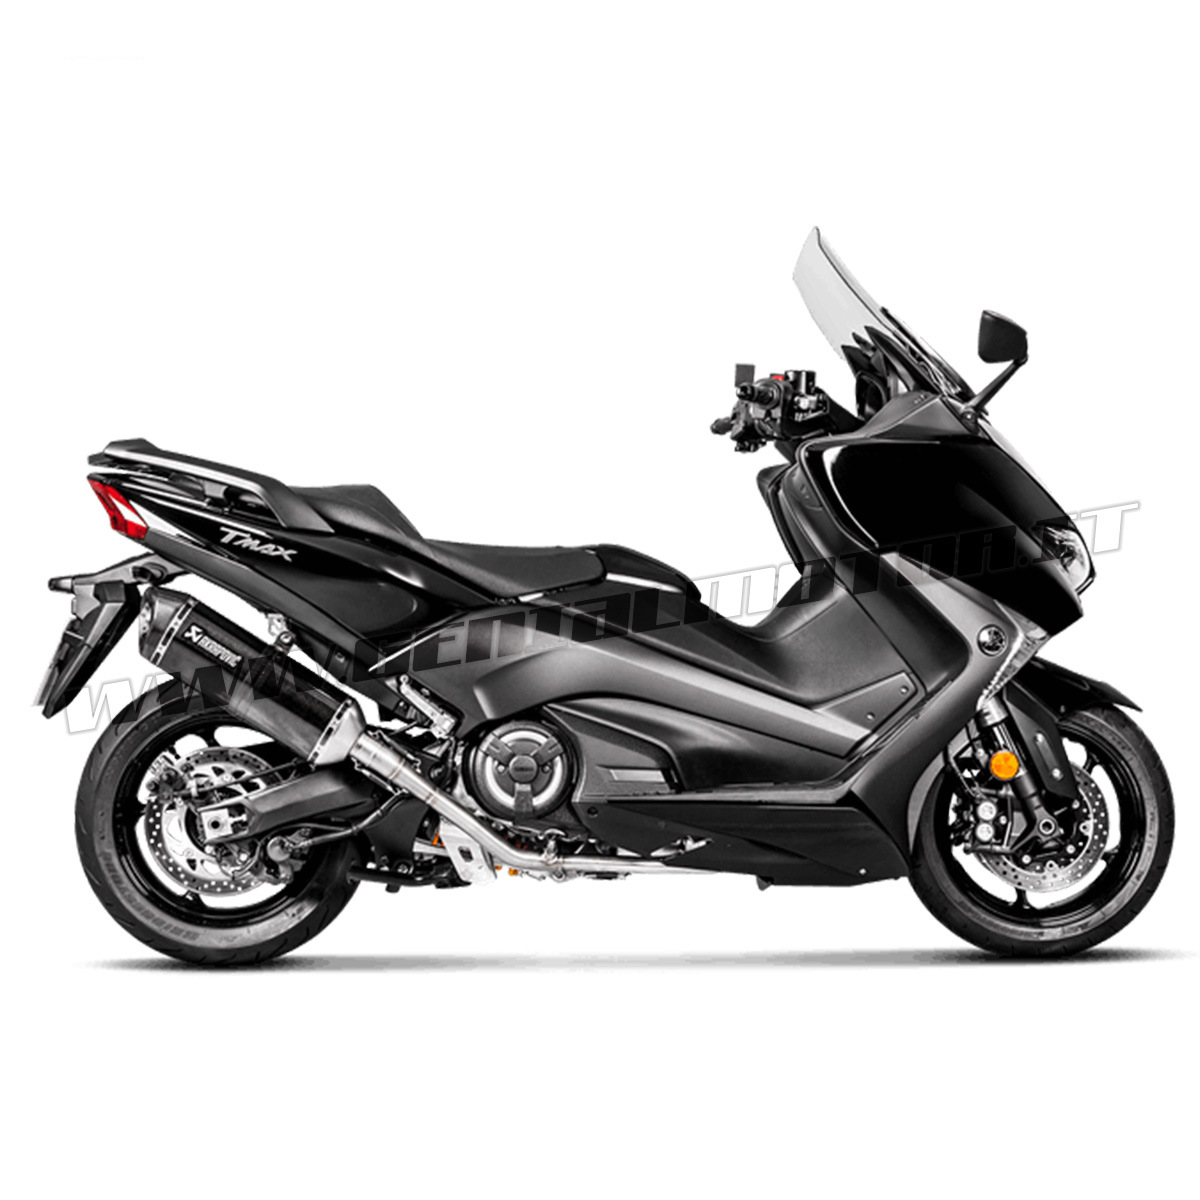 S Y5r5 Rc Full System Exhaust Carbon Akrapovic Racing Line Yamaha T Max 530 2017 2019